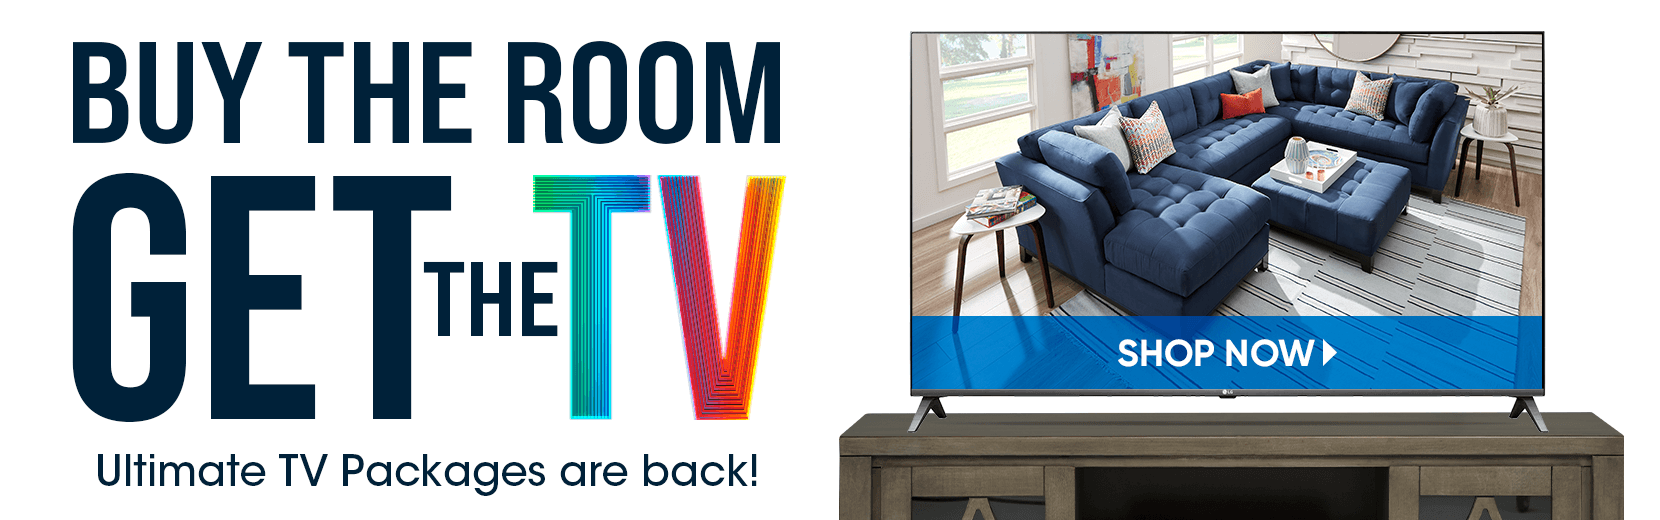 buy the room get the tv. ultimate tv packages are back. shop now